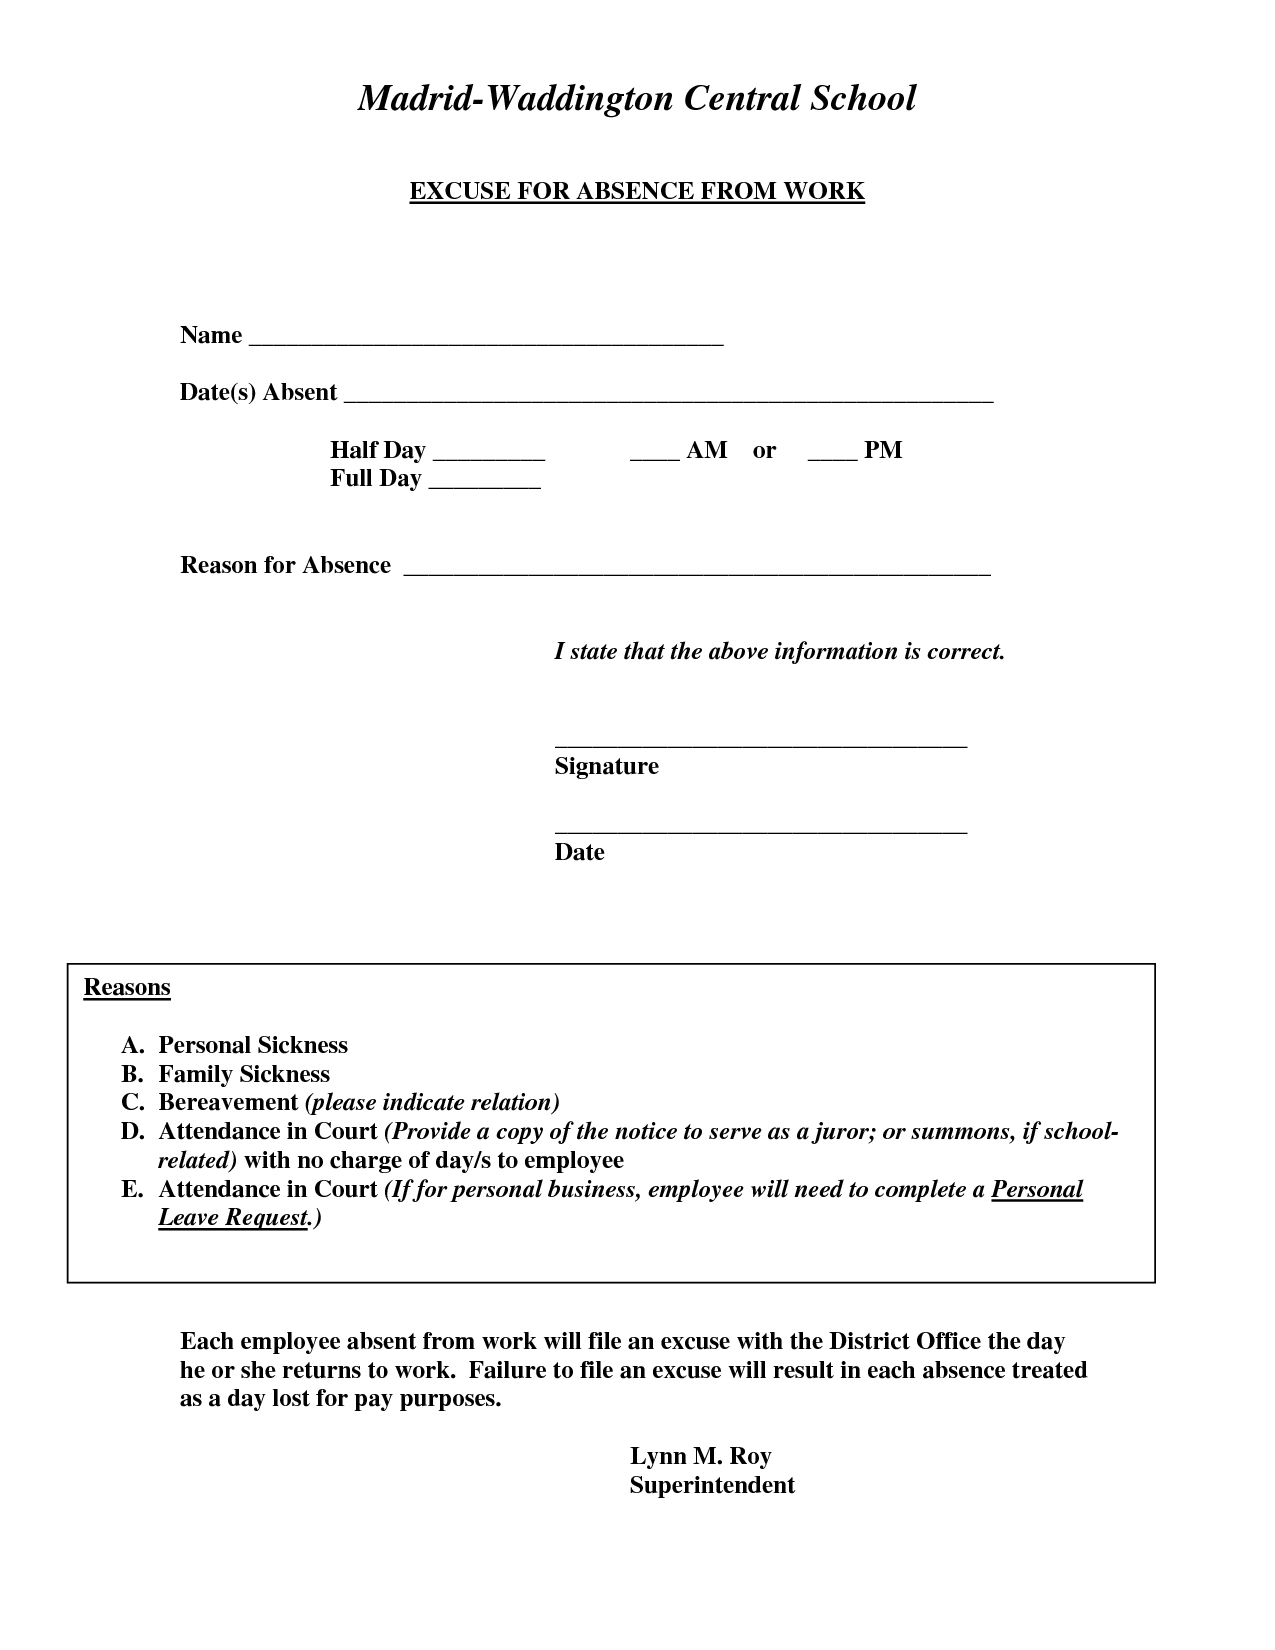 Doctors Excuse For Work Template | Excuse For Absence From Work - Free Printable Doctors Excuse